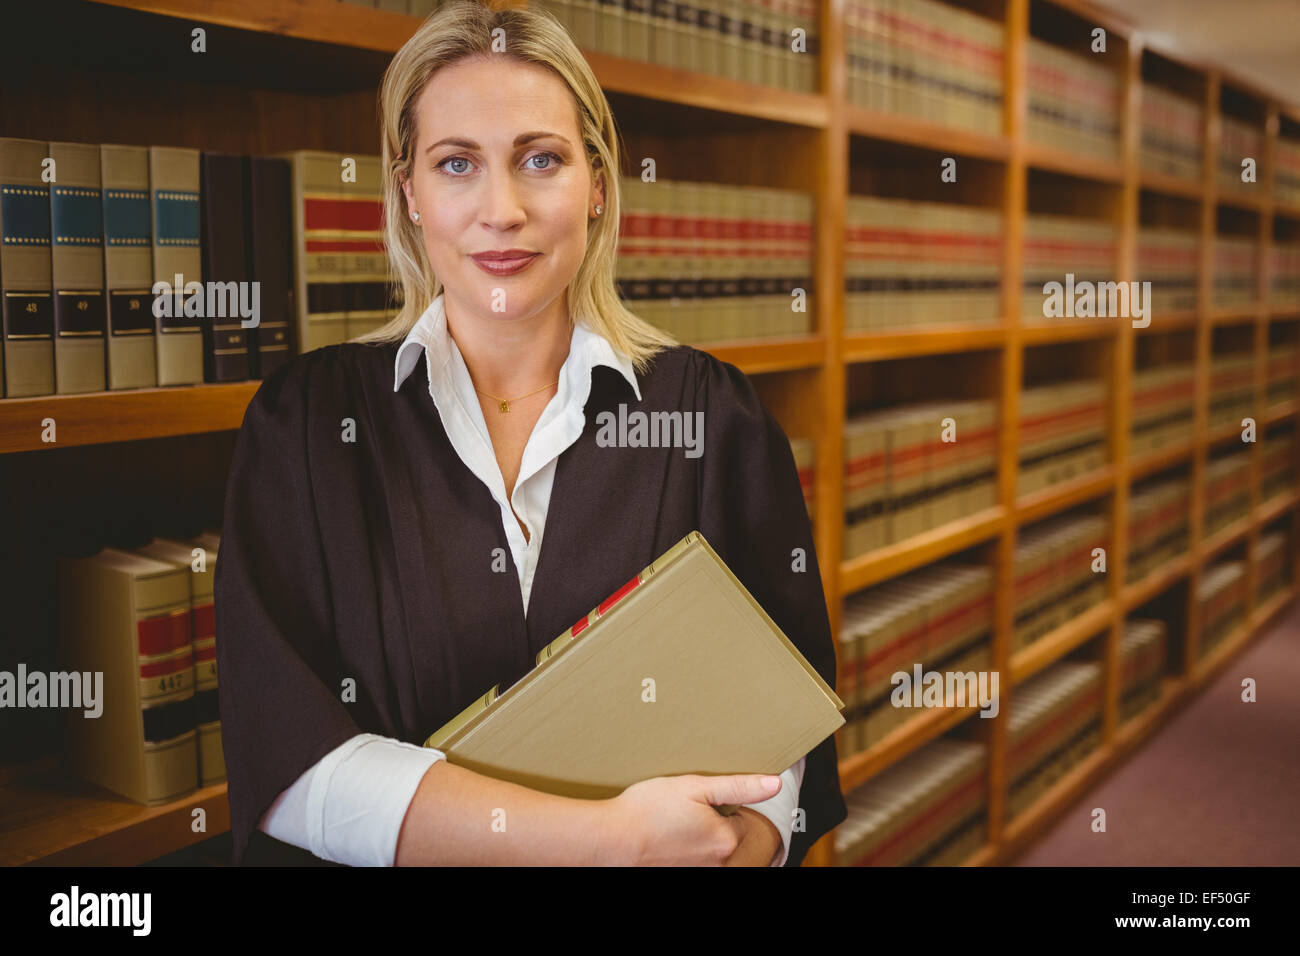 Serious lawyer holding a file while standing - Stock Image